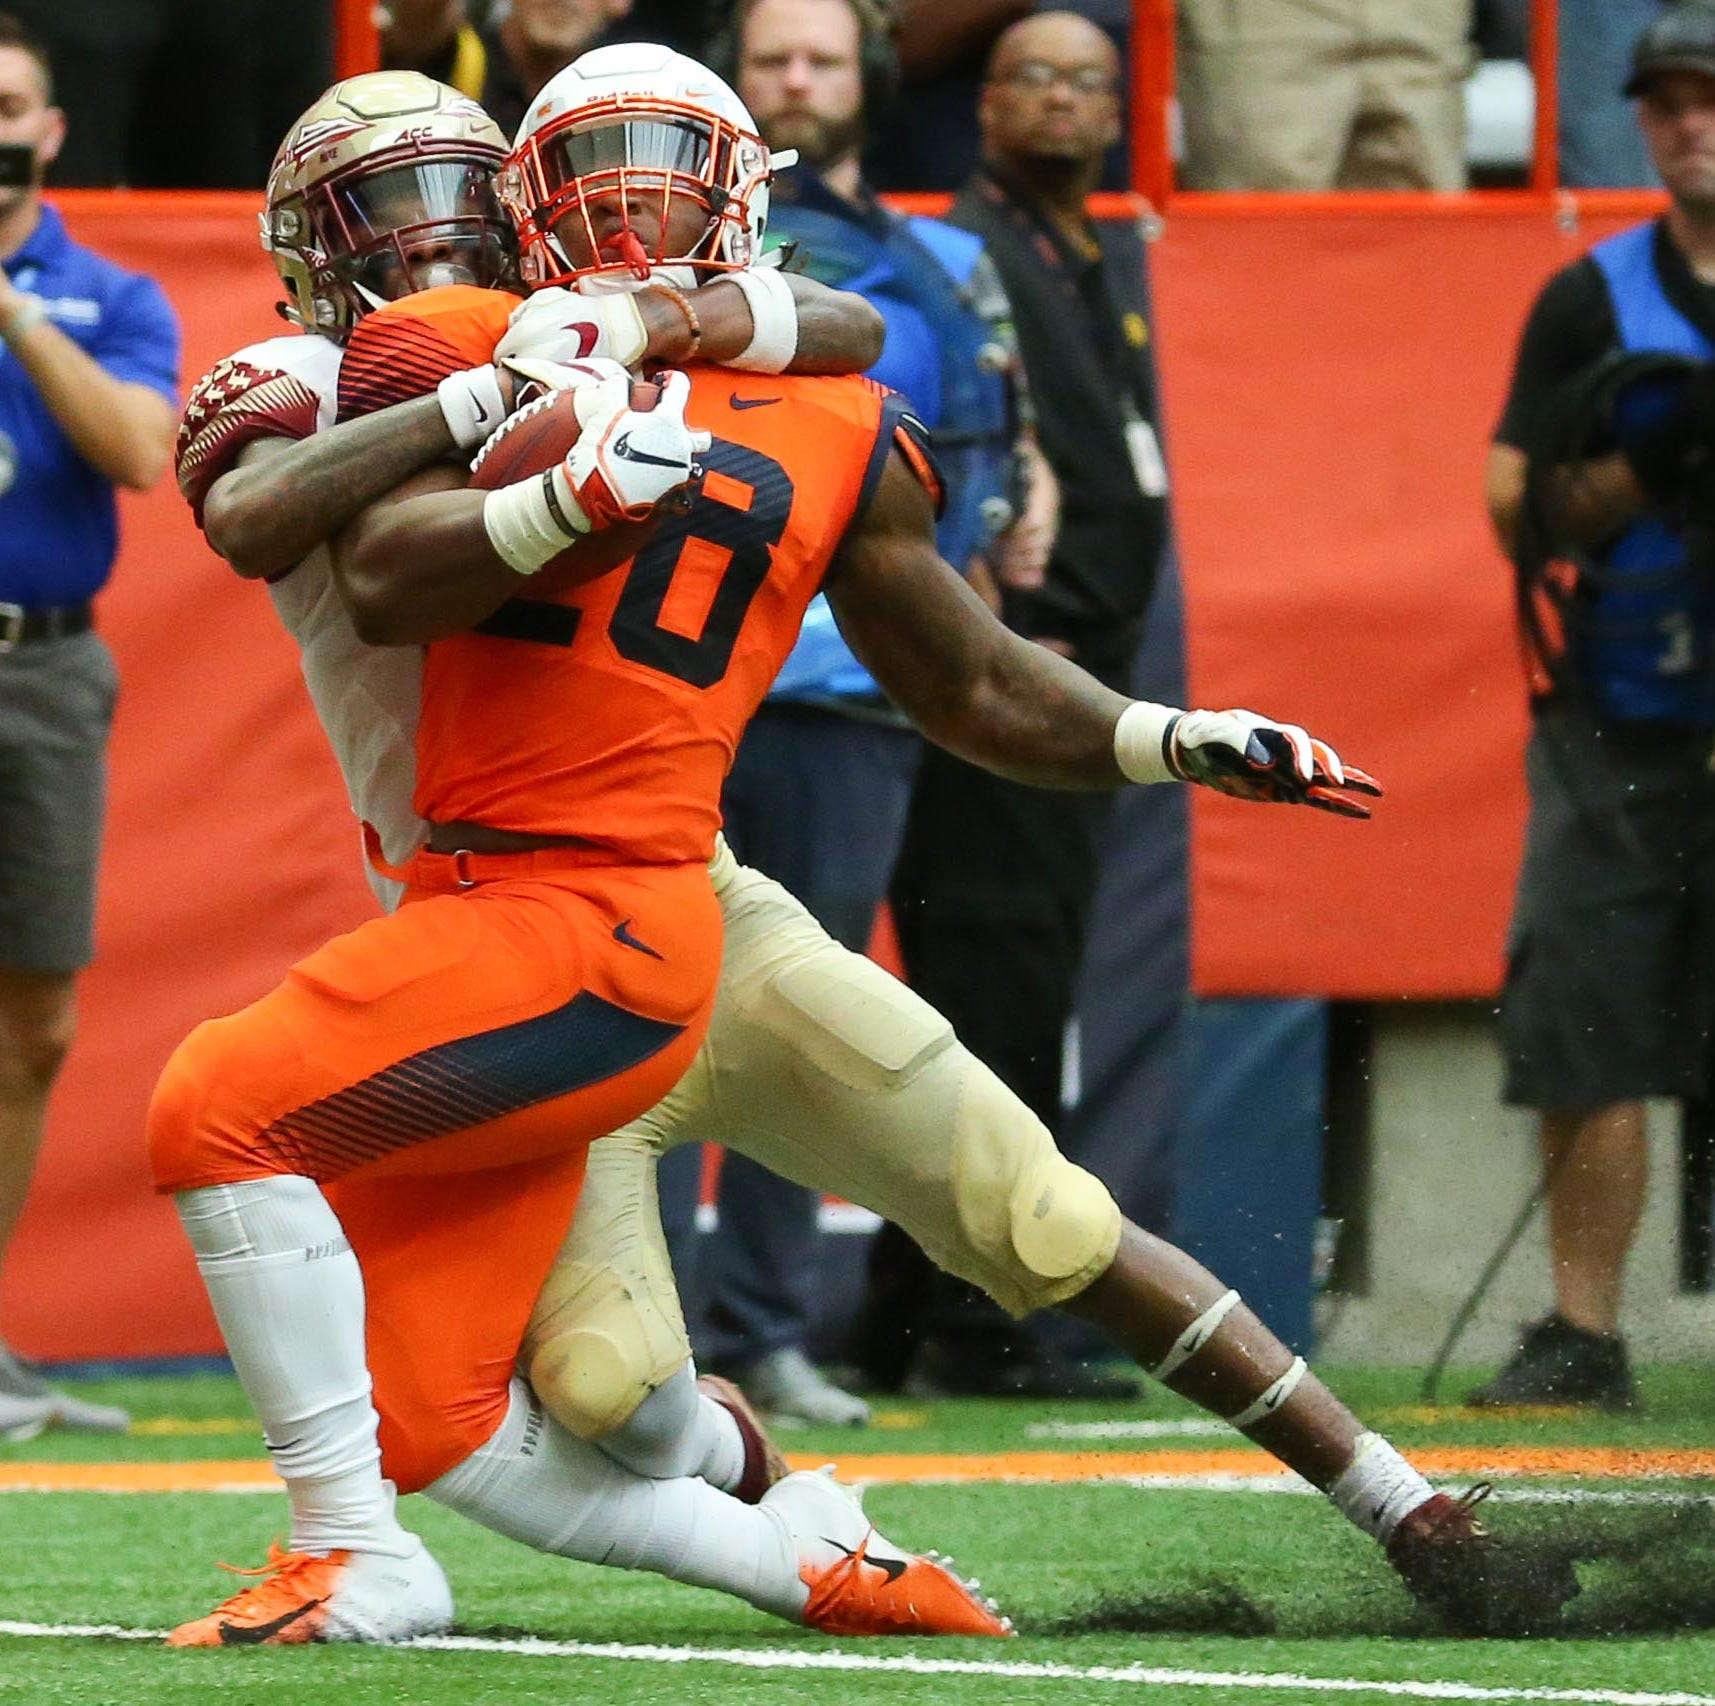 Florida State looking to cut down on turnovers, penalties and play smart football